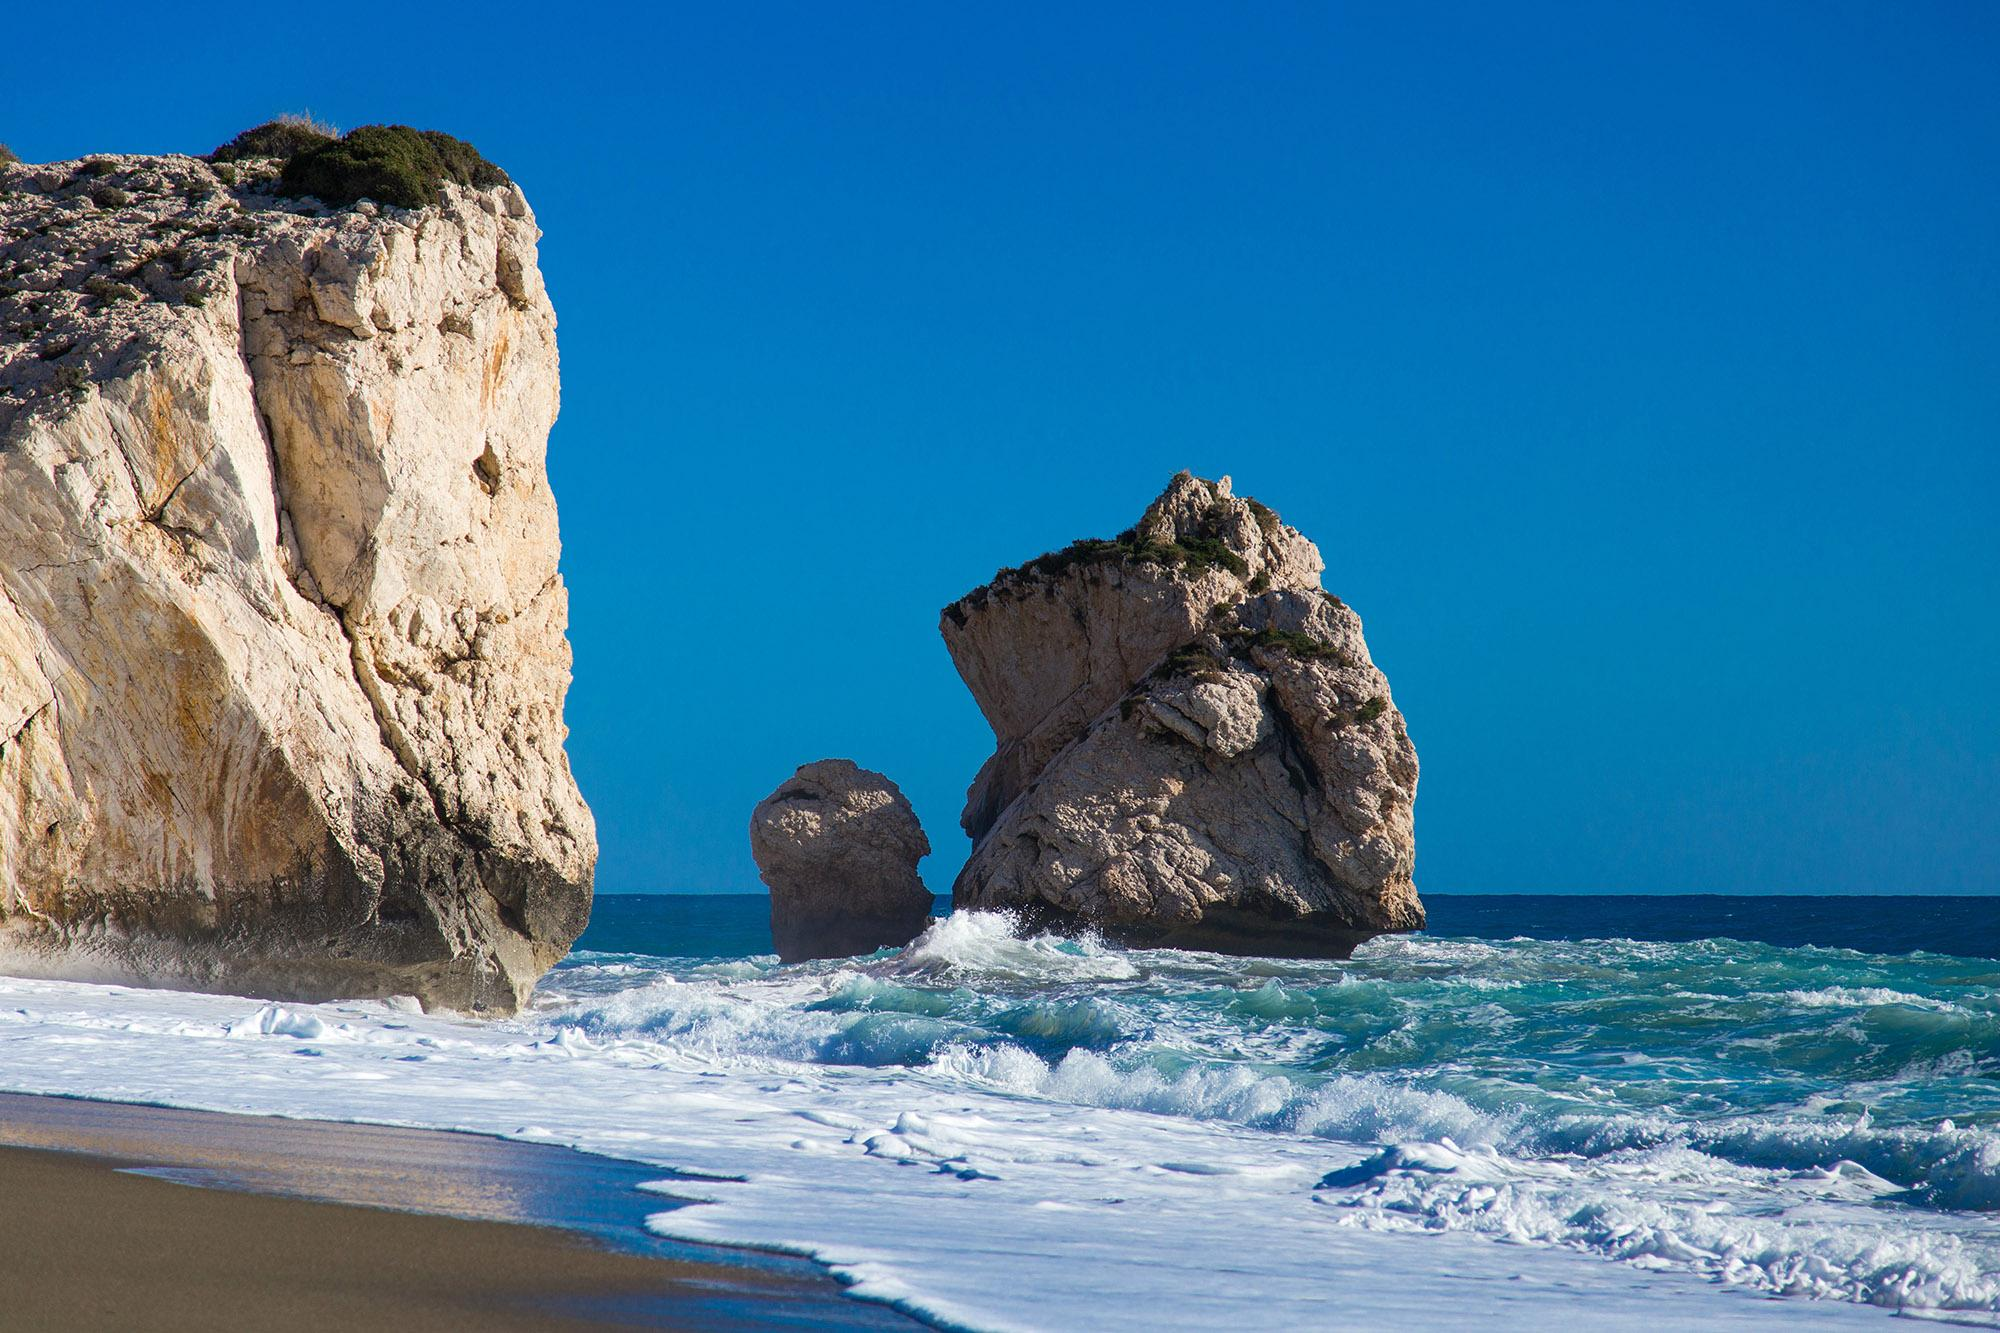 Petra Tou Romiou, or Aphrodite's Rock, is the legendary birthplace of the goddess. – © Evgenios Mouratidis / Shutterstock